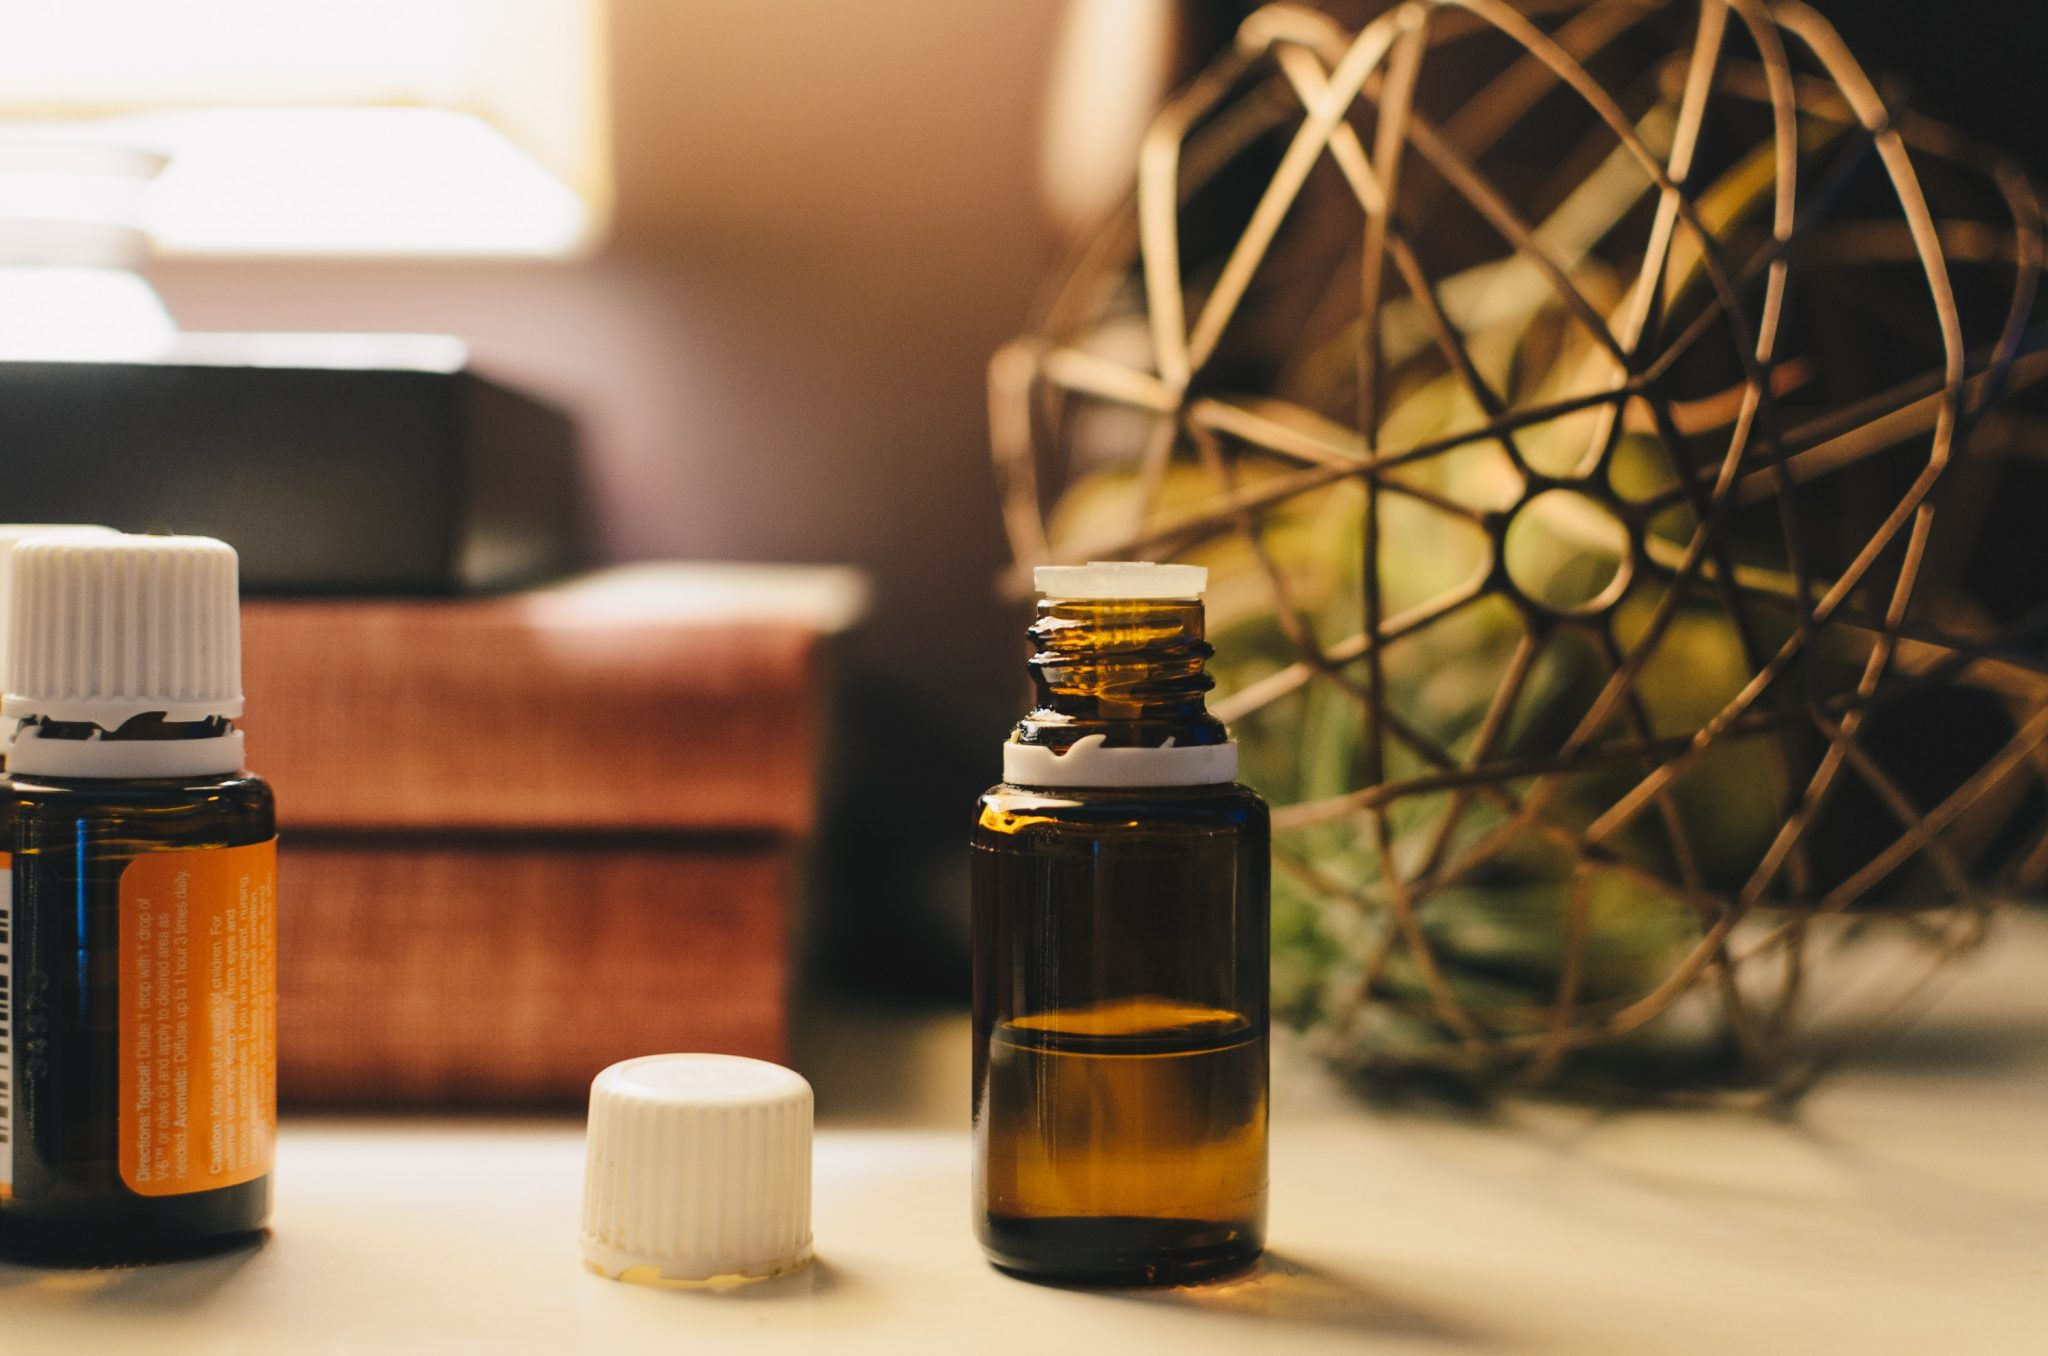 Why I Stopped Buying Essential Oils